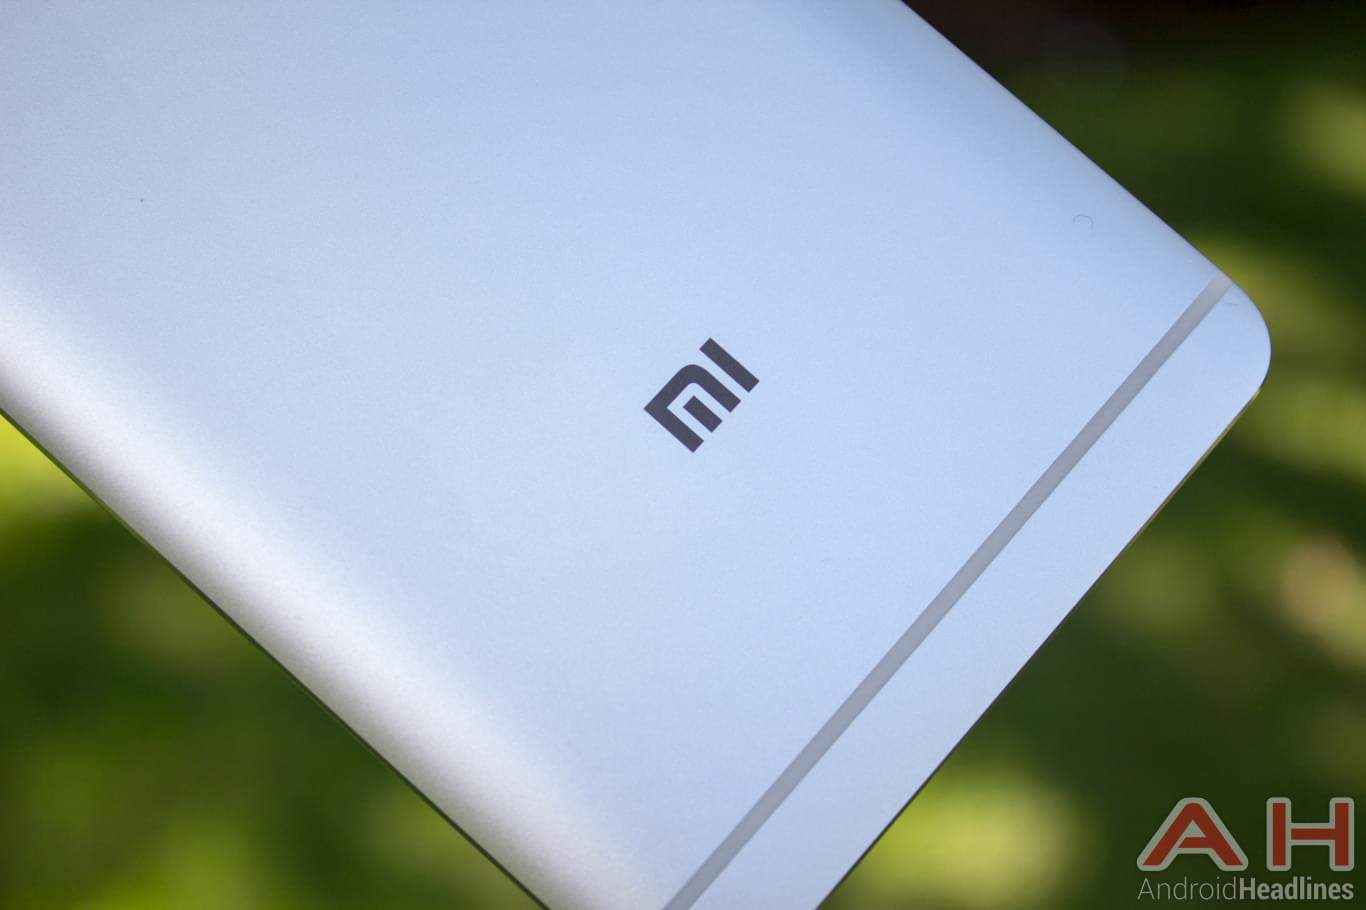 xiaomi india we ve sold over 1 million phones in 18 days androidheadlines com